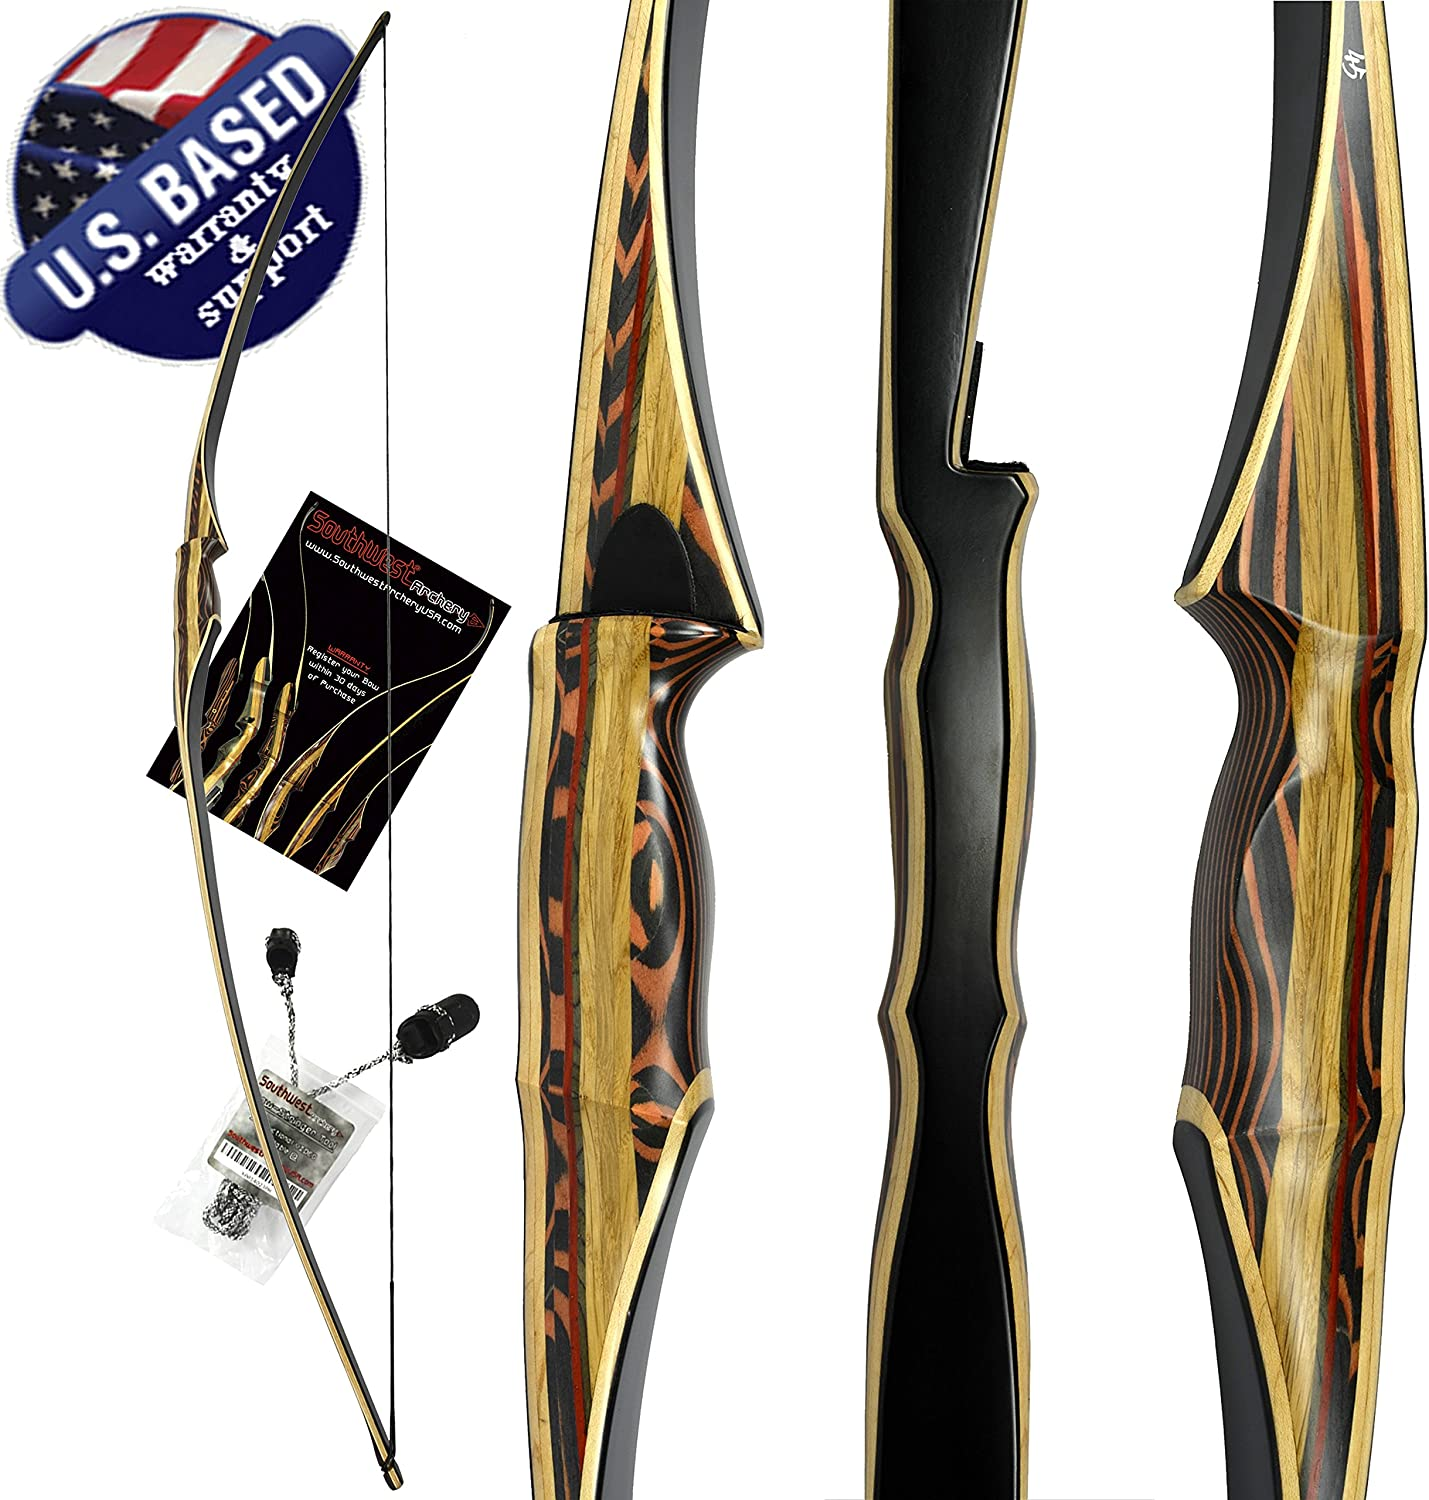 Southwest Archery Scorpion Traditional Hunting Long Bow 68 Longbow Right Left Hand Draw Weights in 25-60 lbs USA Based Company Perfect for Beginner to Intermediate 1 Year Warranty